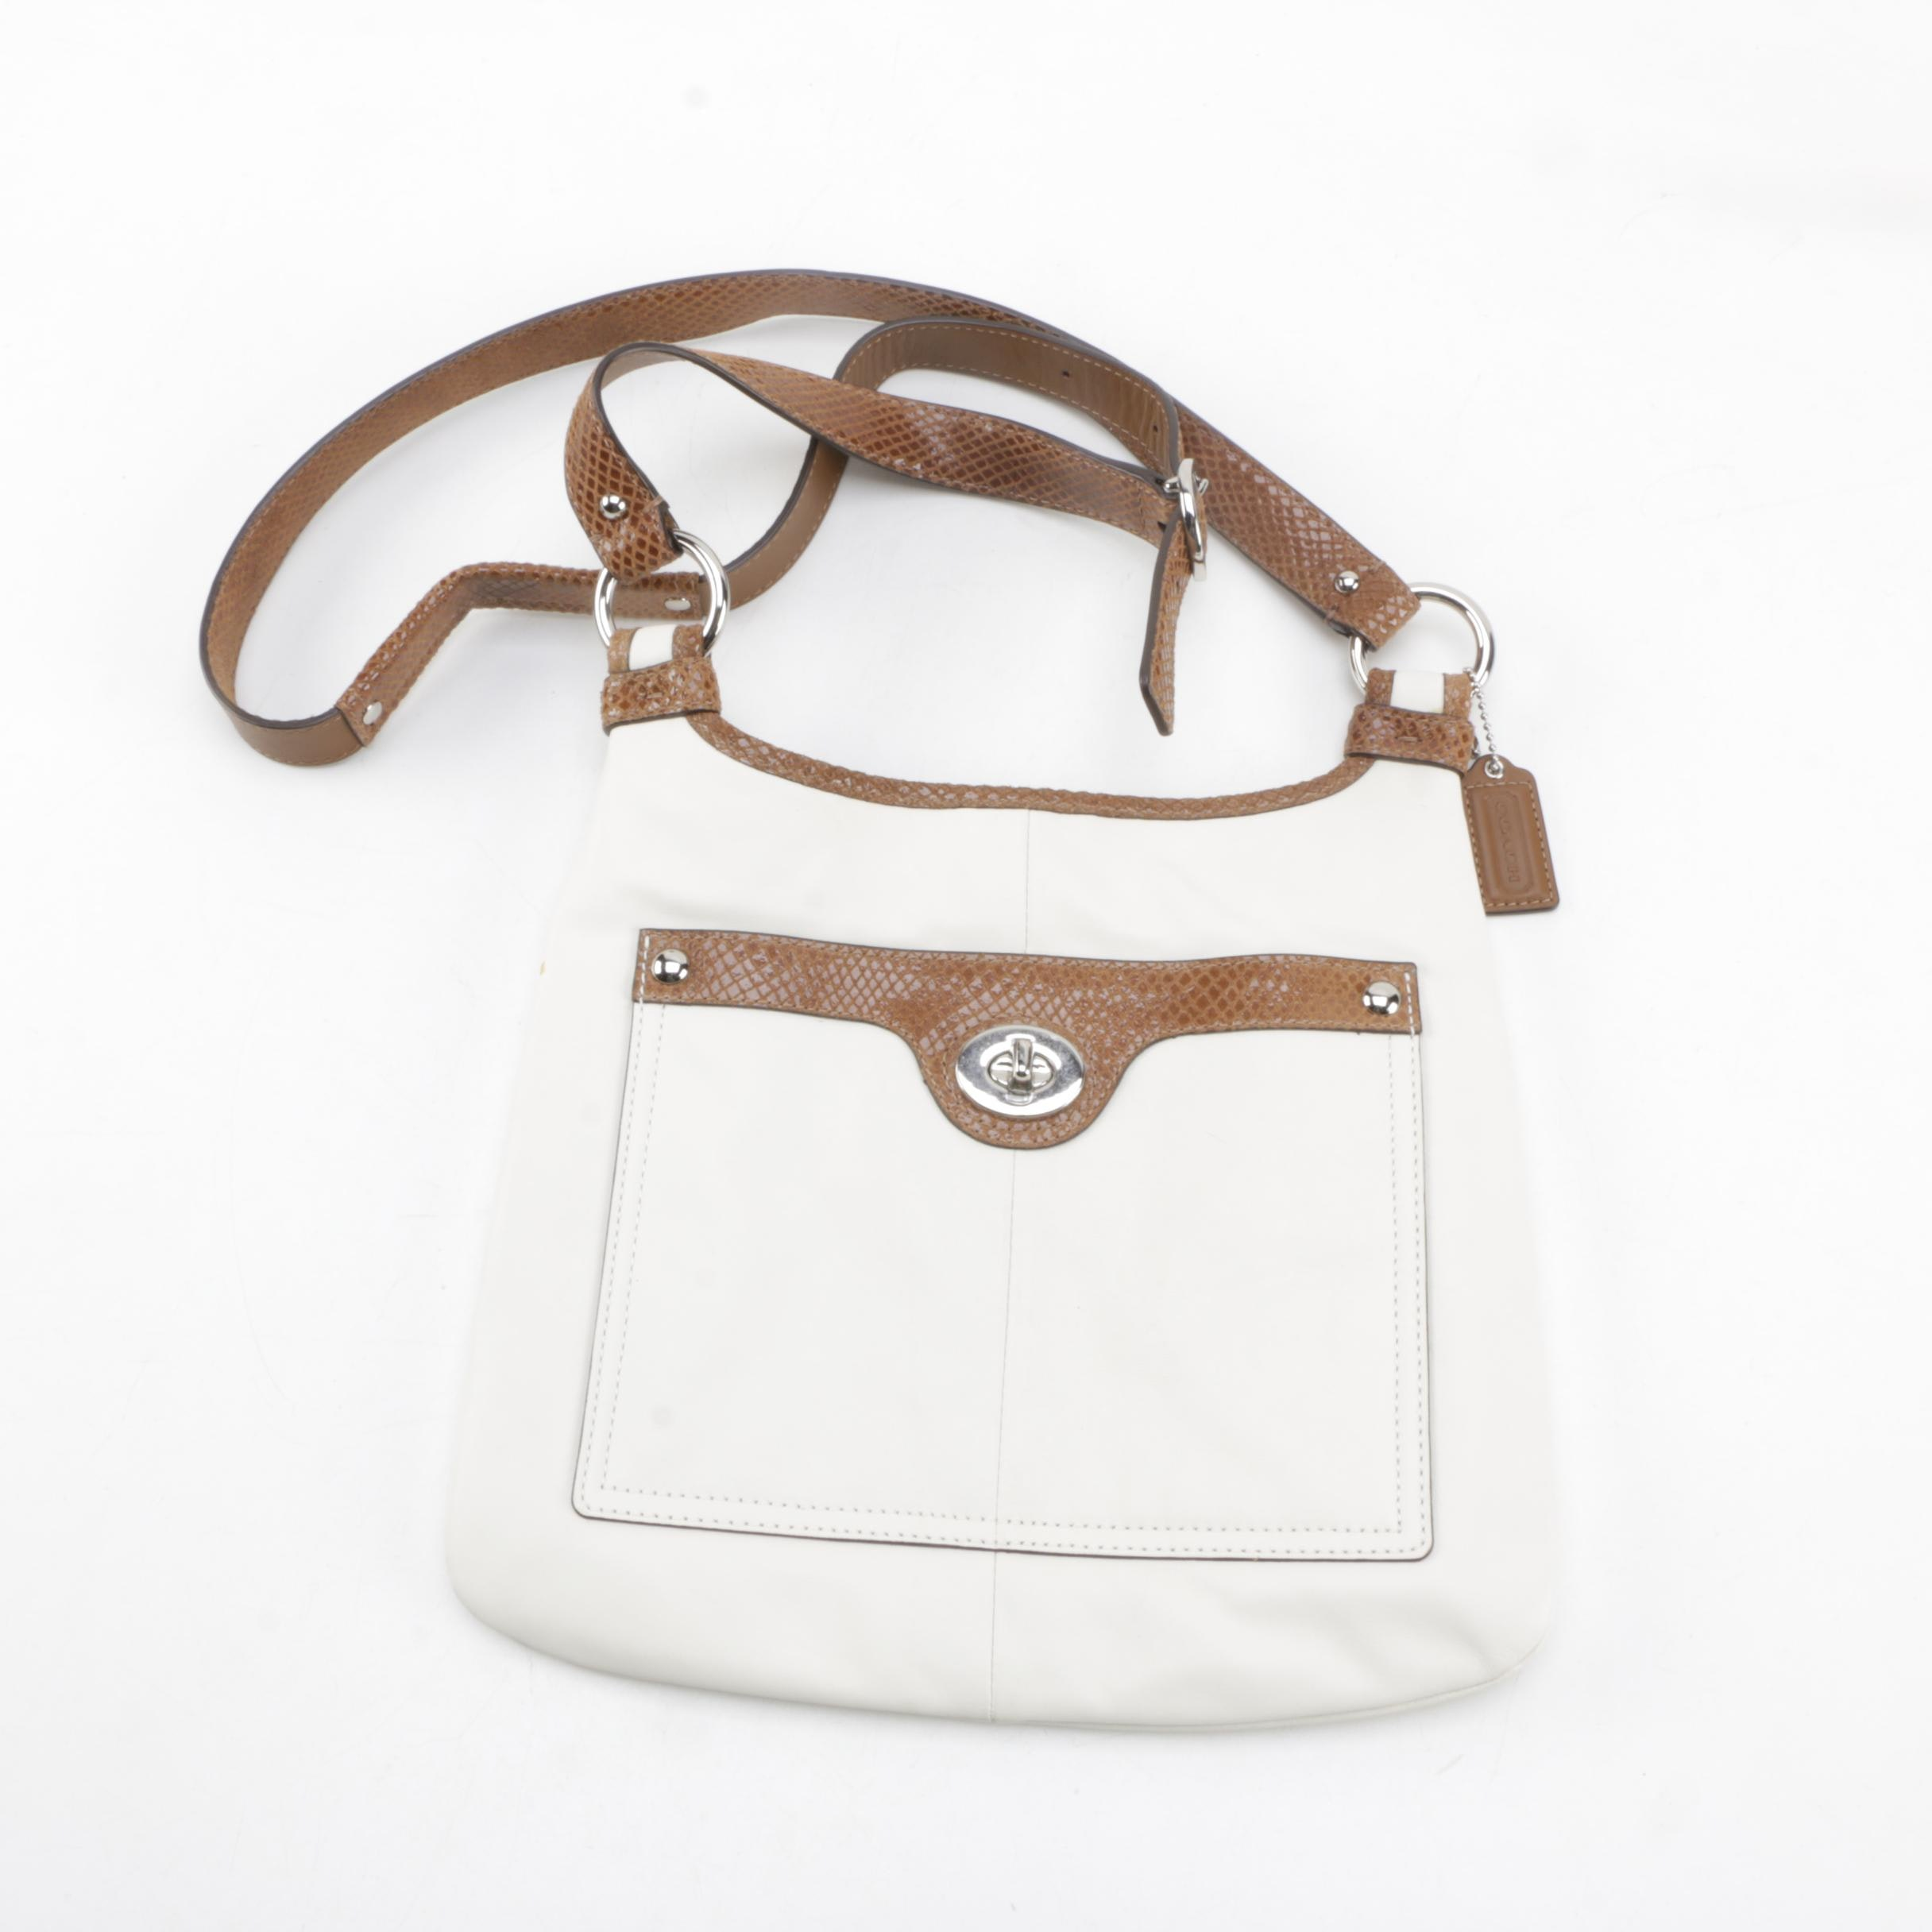 Coach Brown and Cream Leather Crossbody